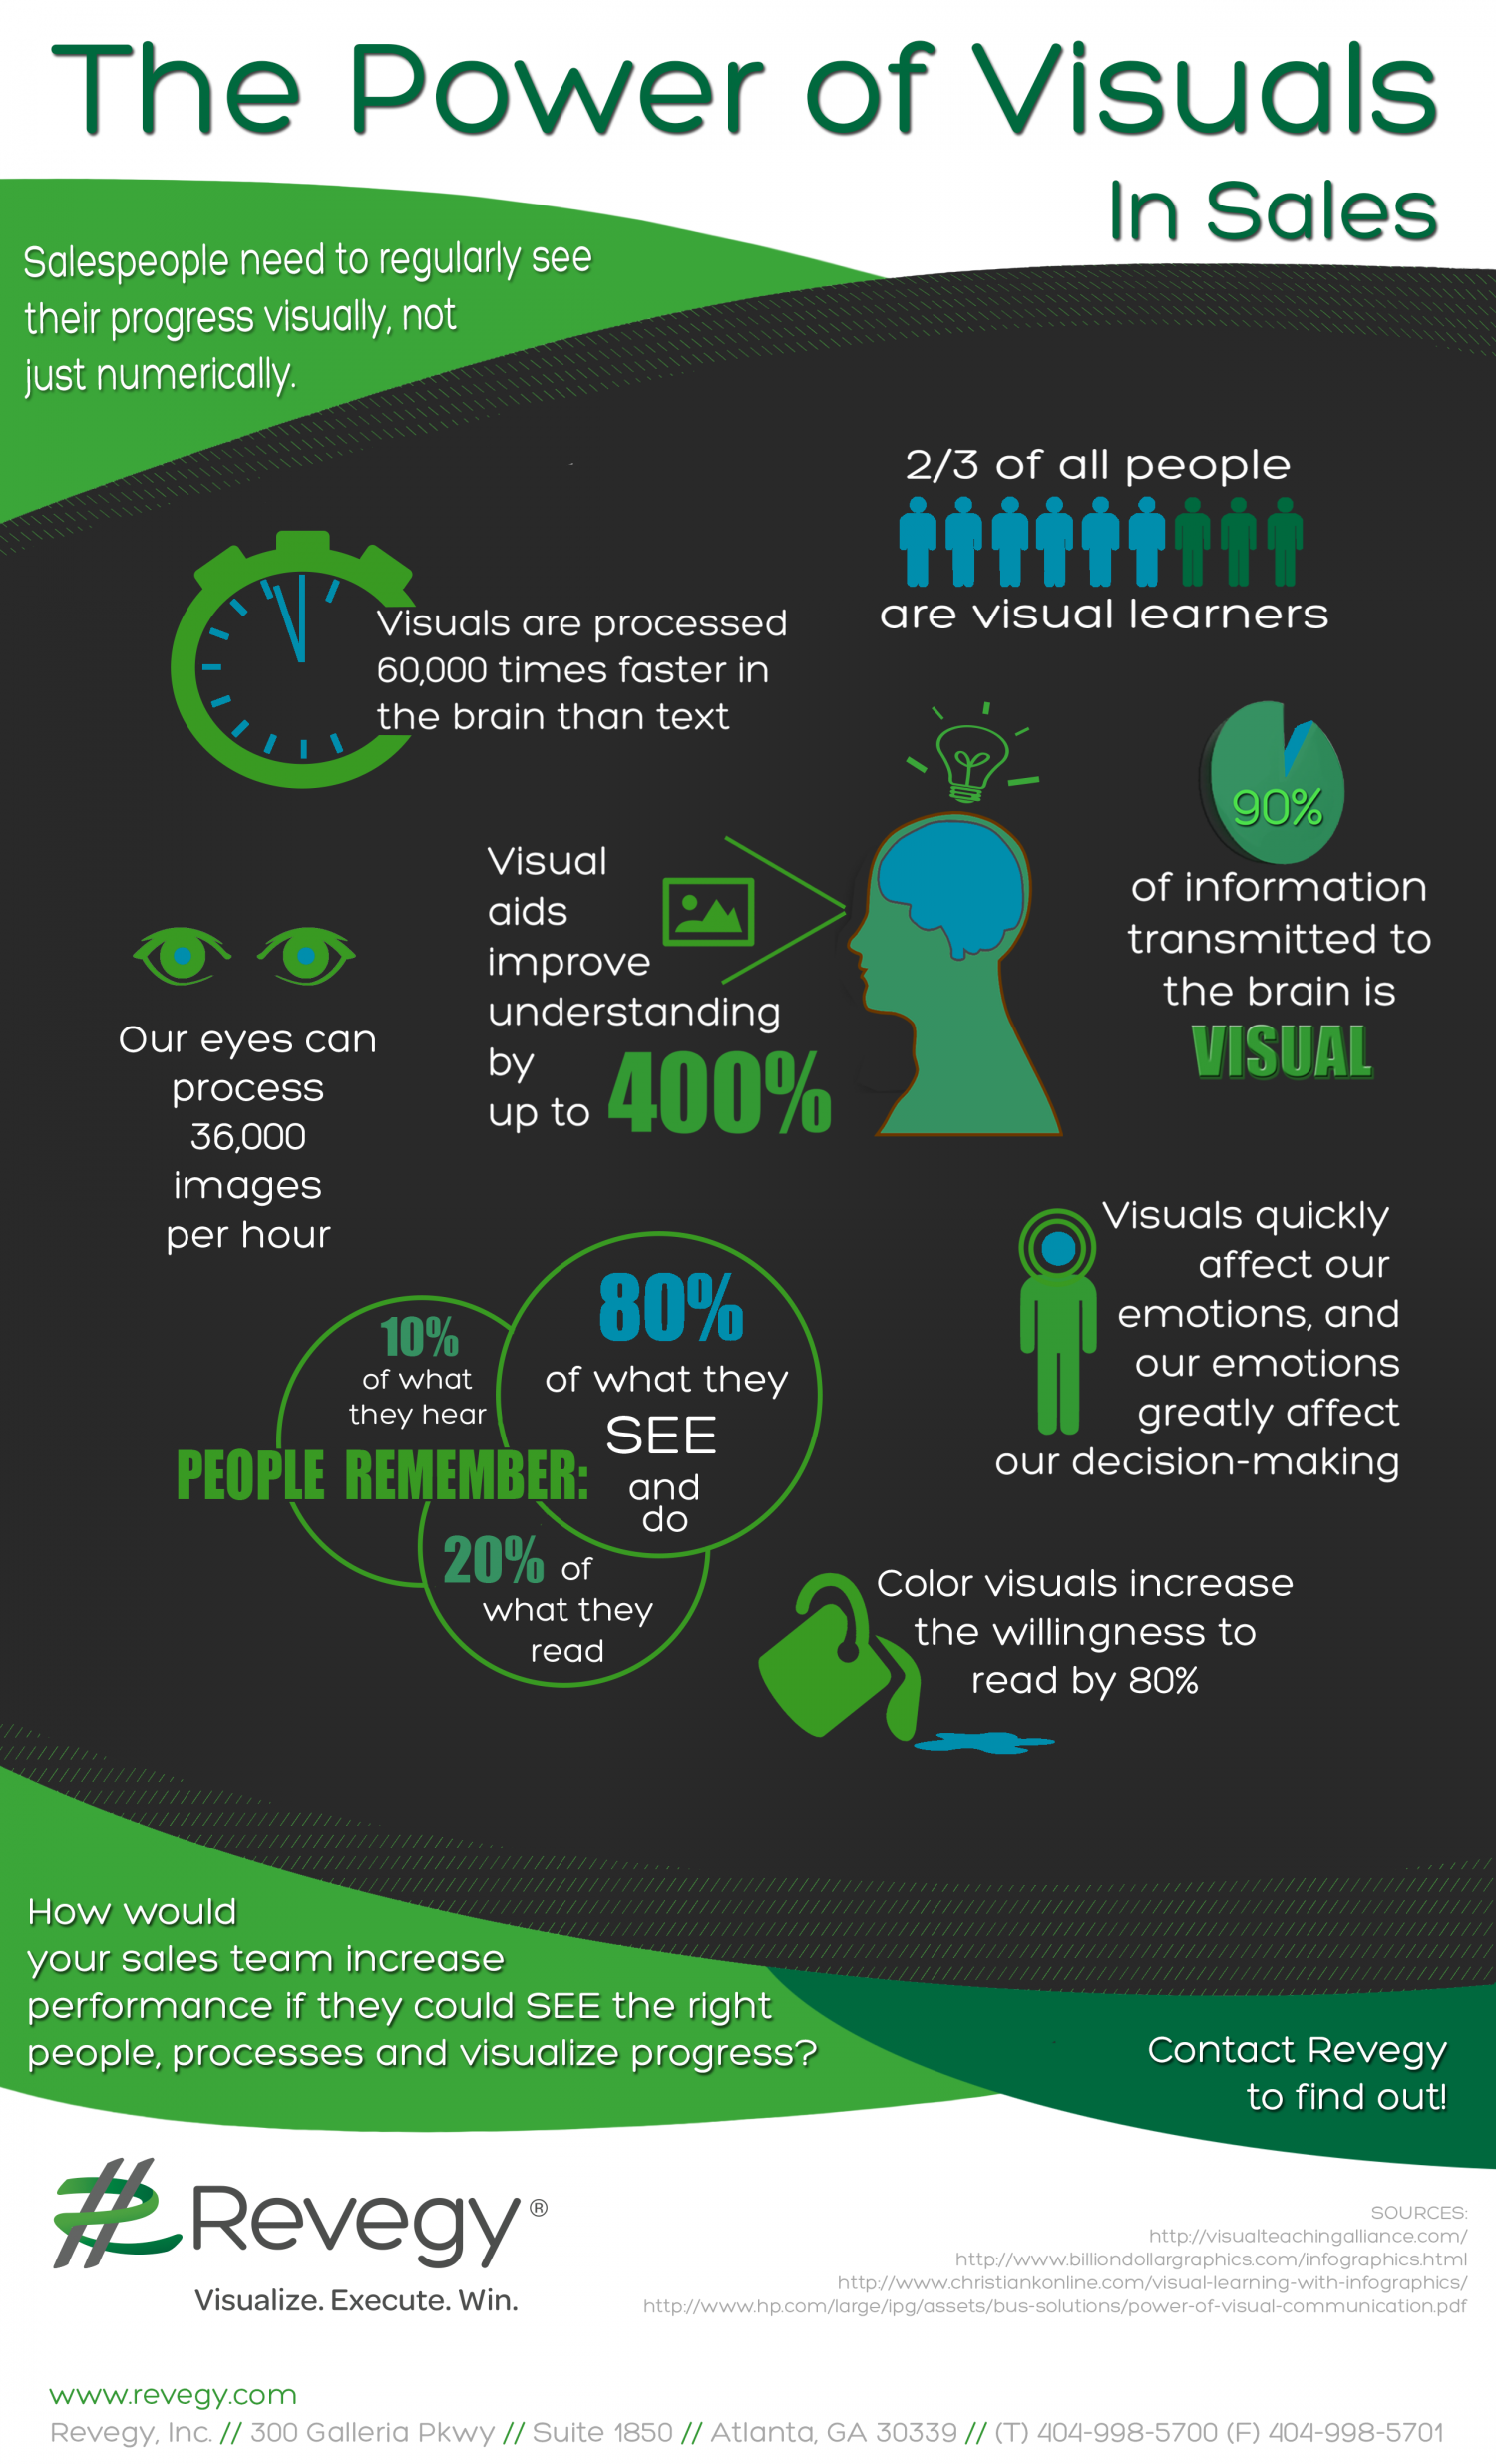 The Power of Visuals in Sales Infographic